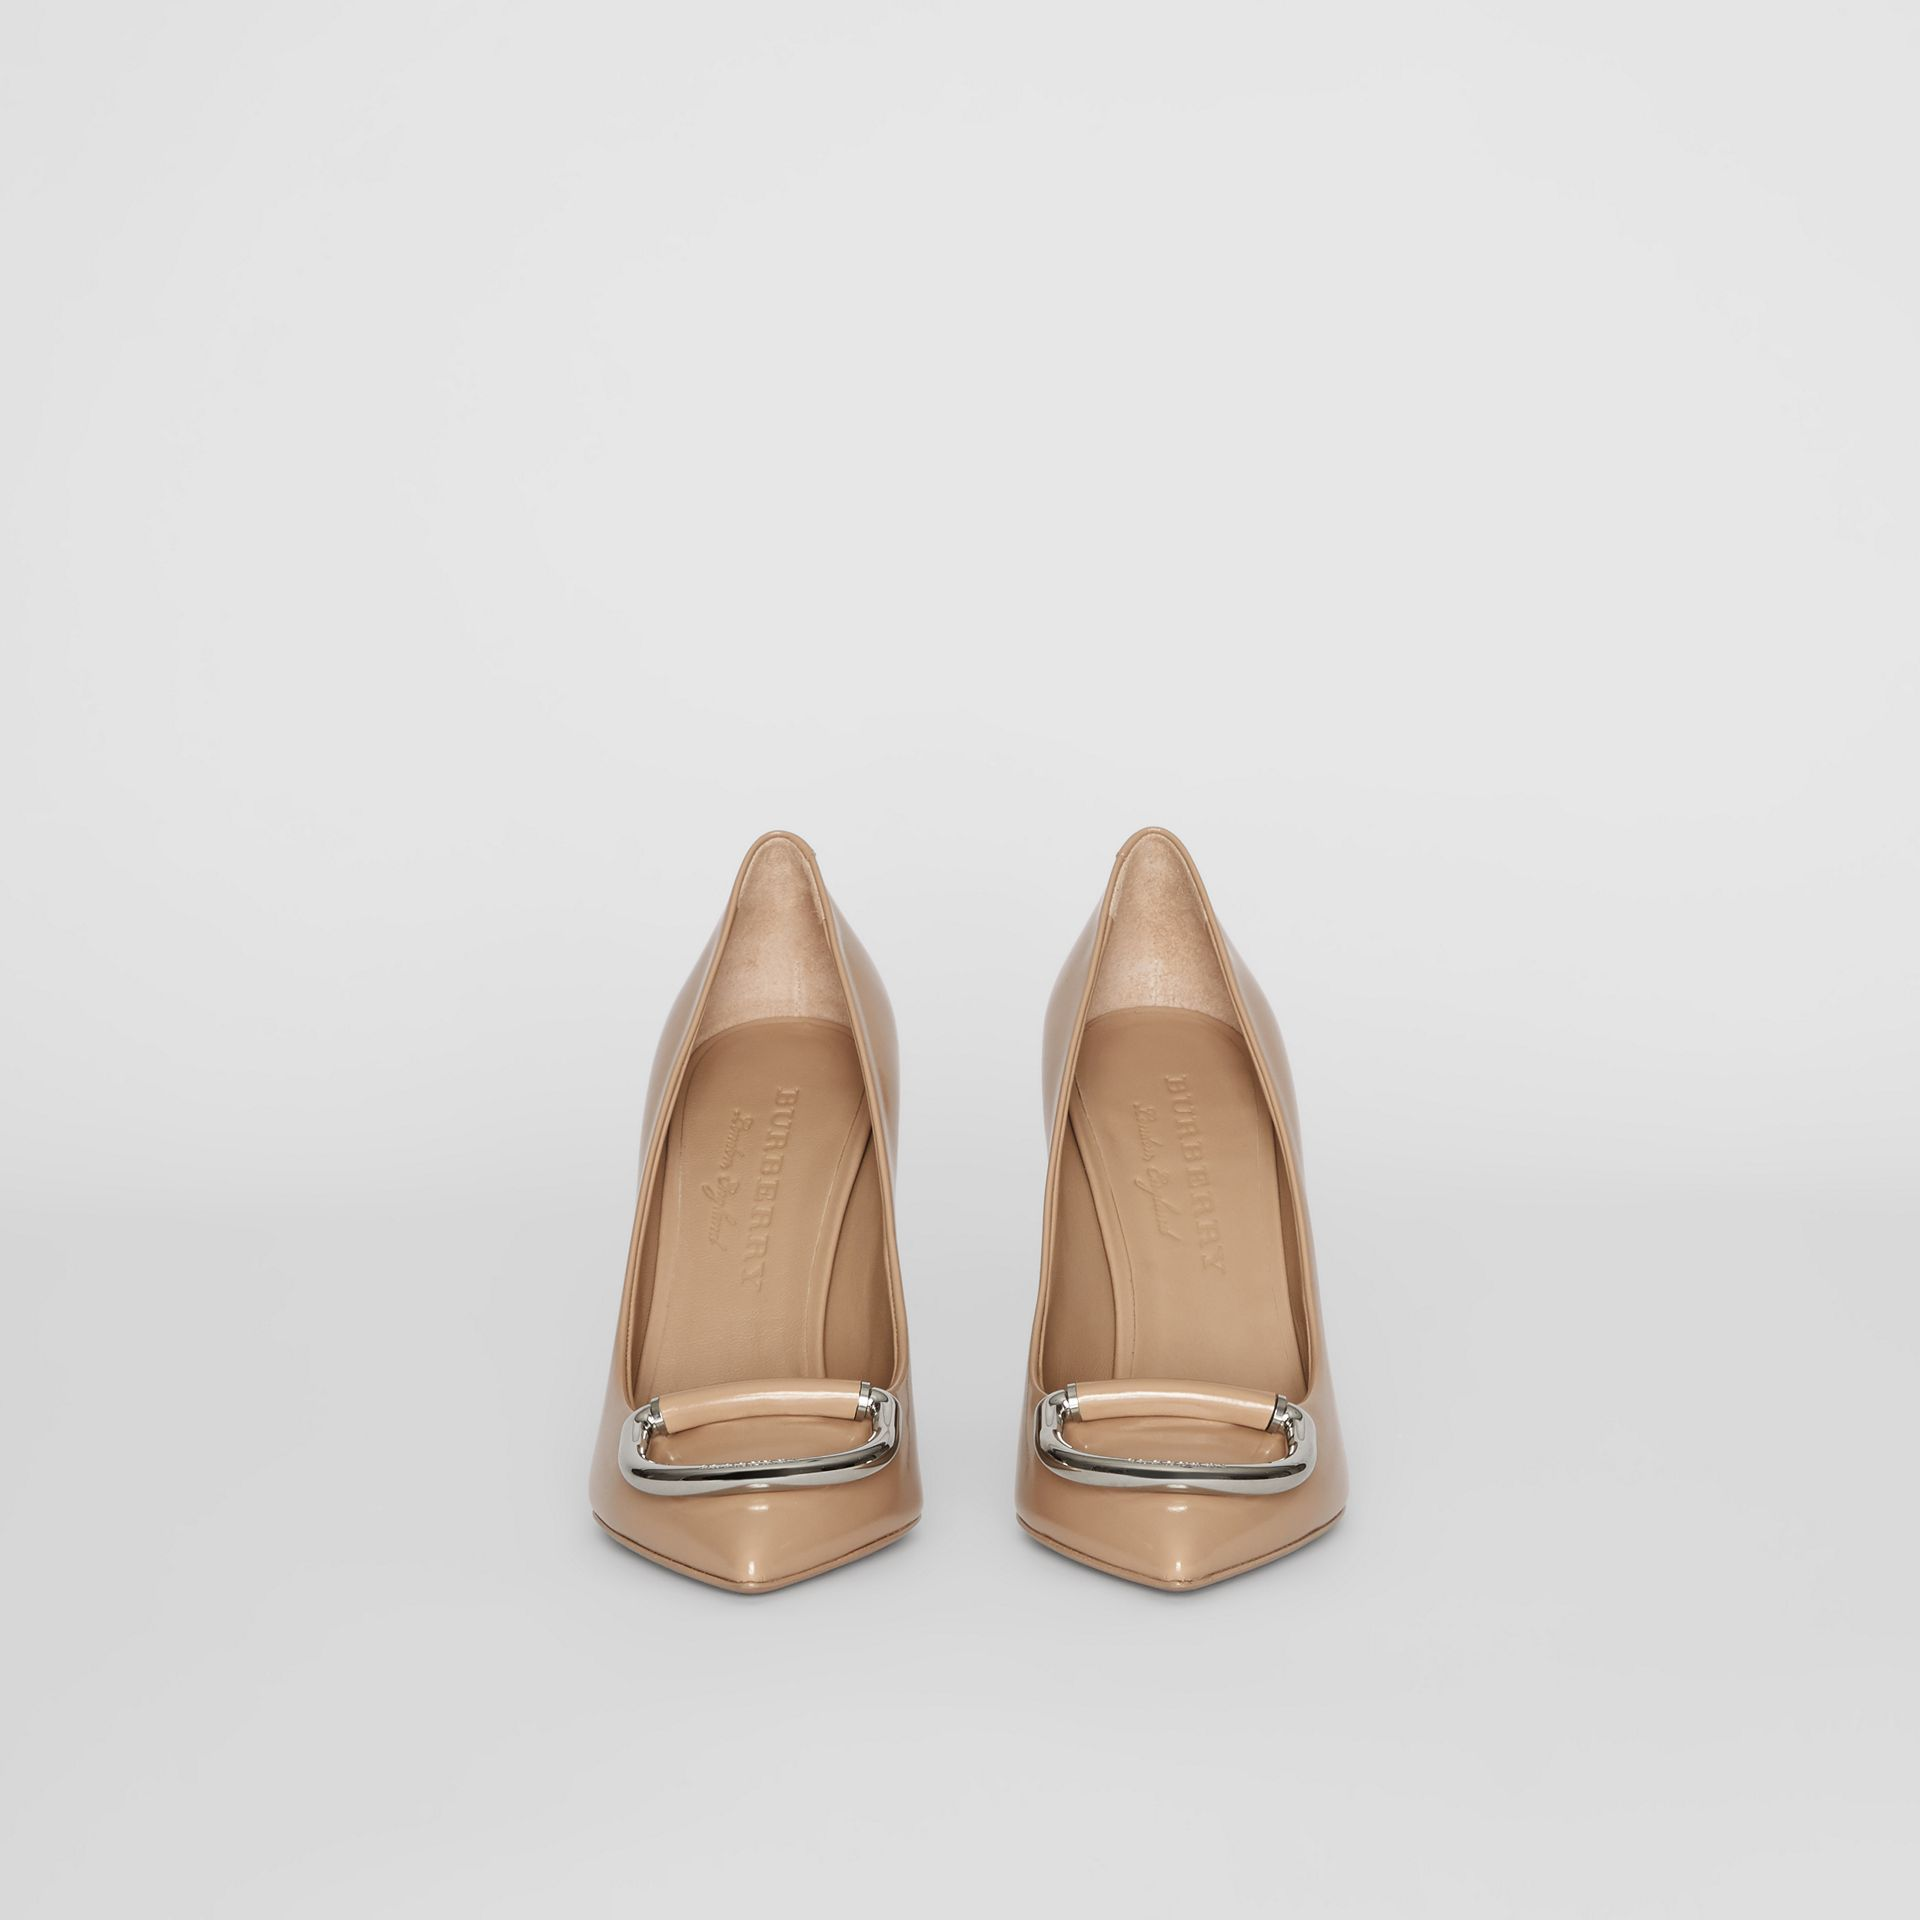 The Leather D-ring Stiletto in Nude Blush - Women | Burberry - gallery image 3